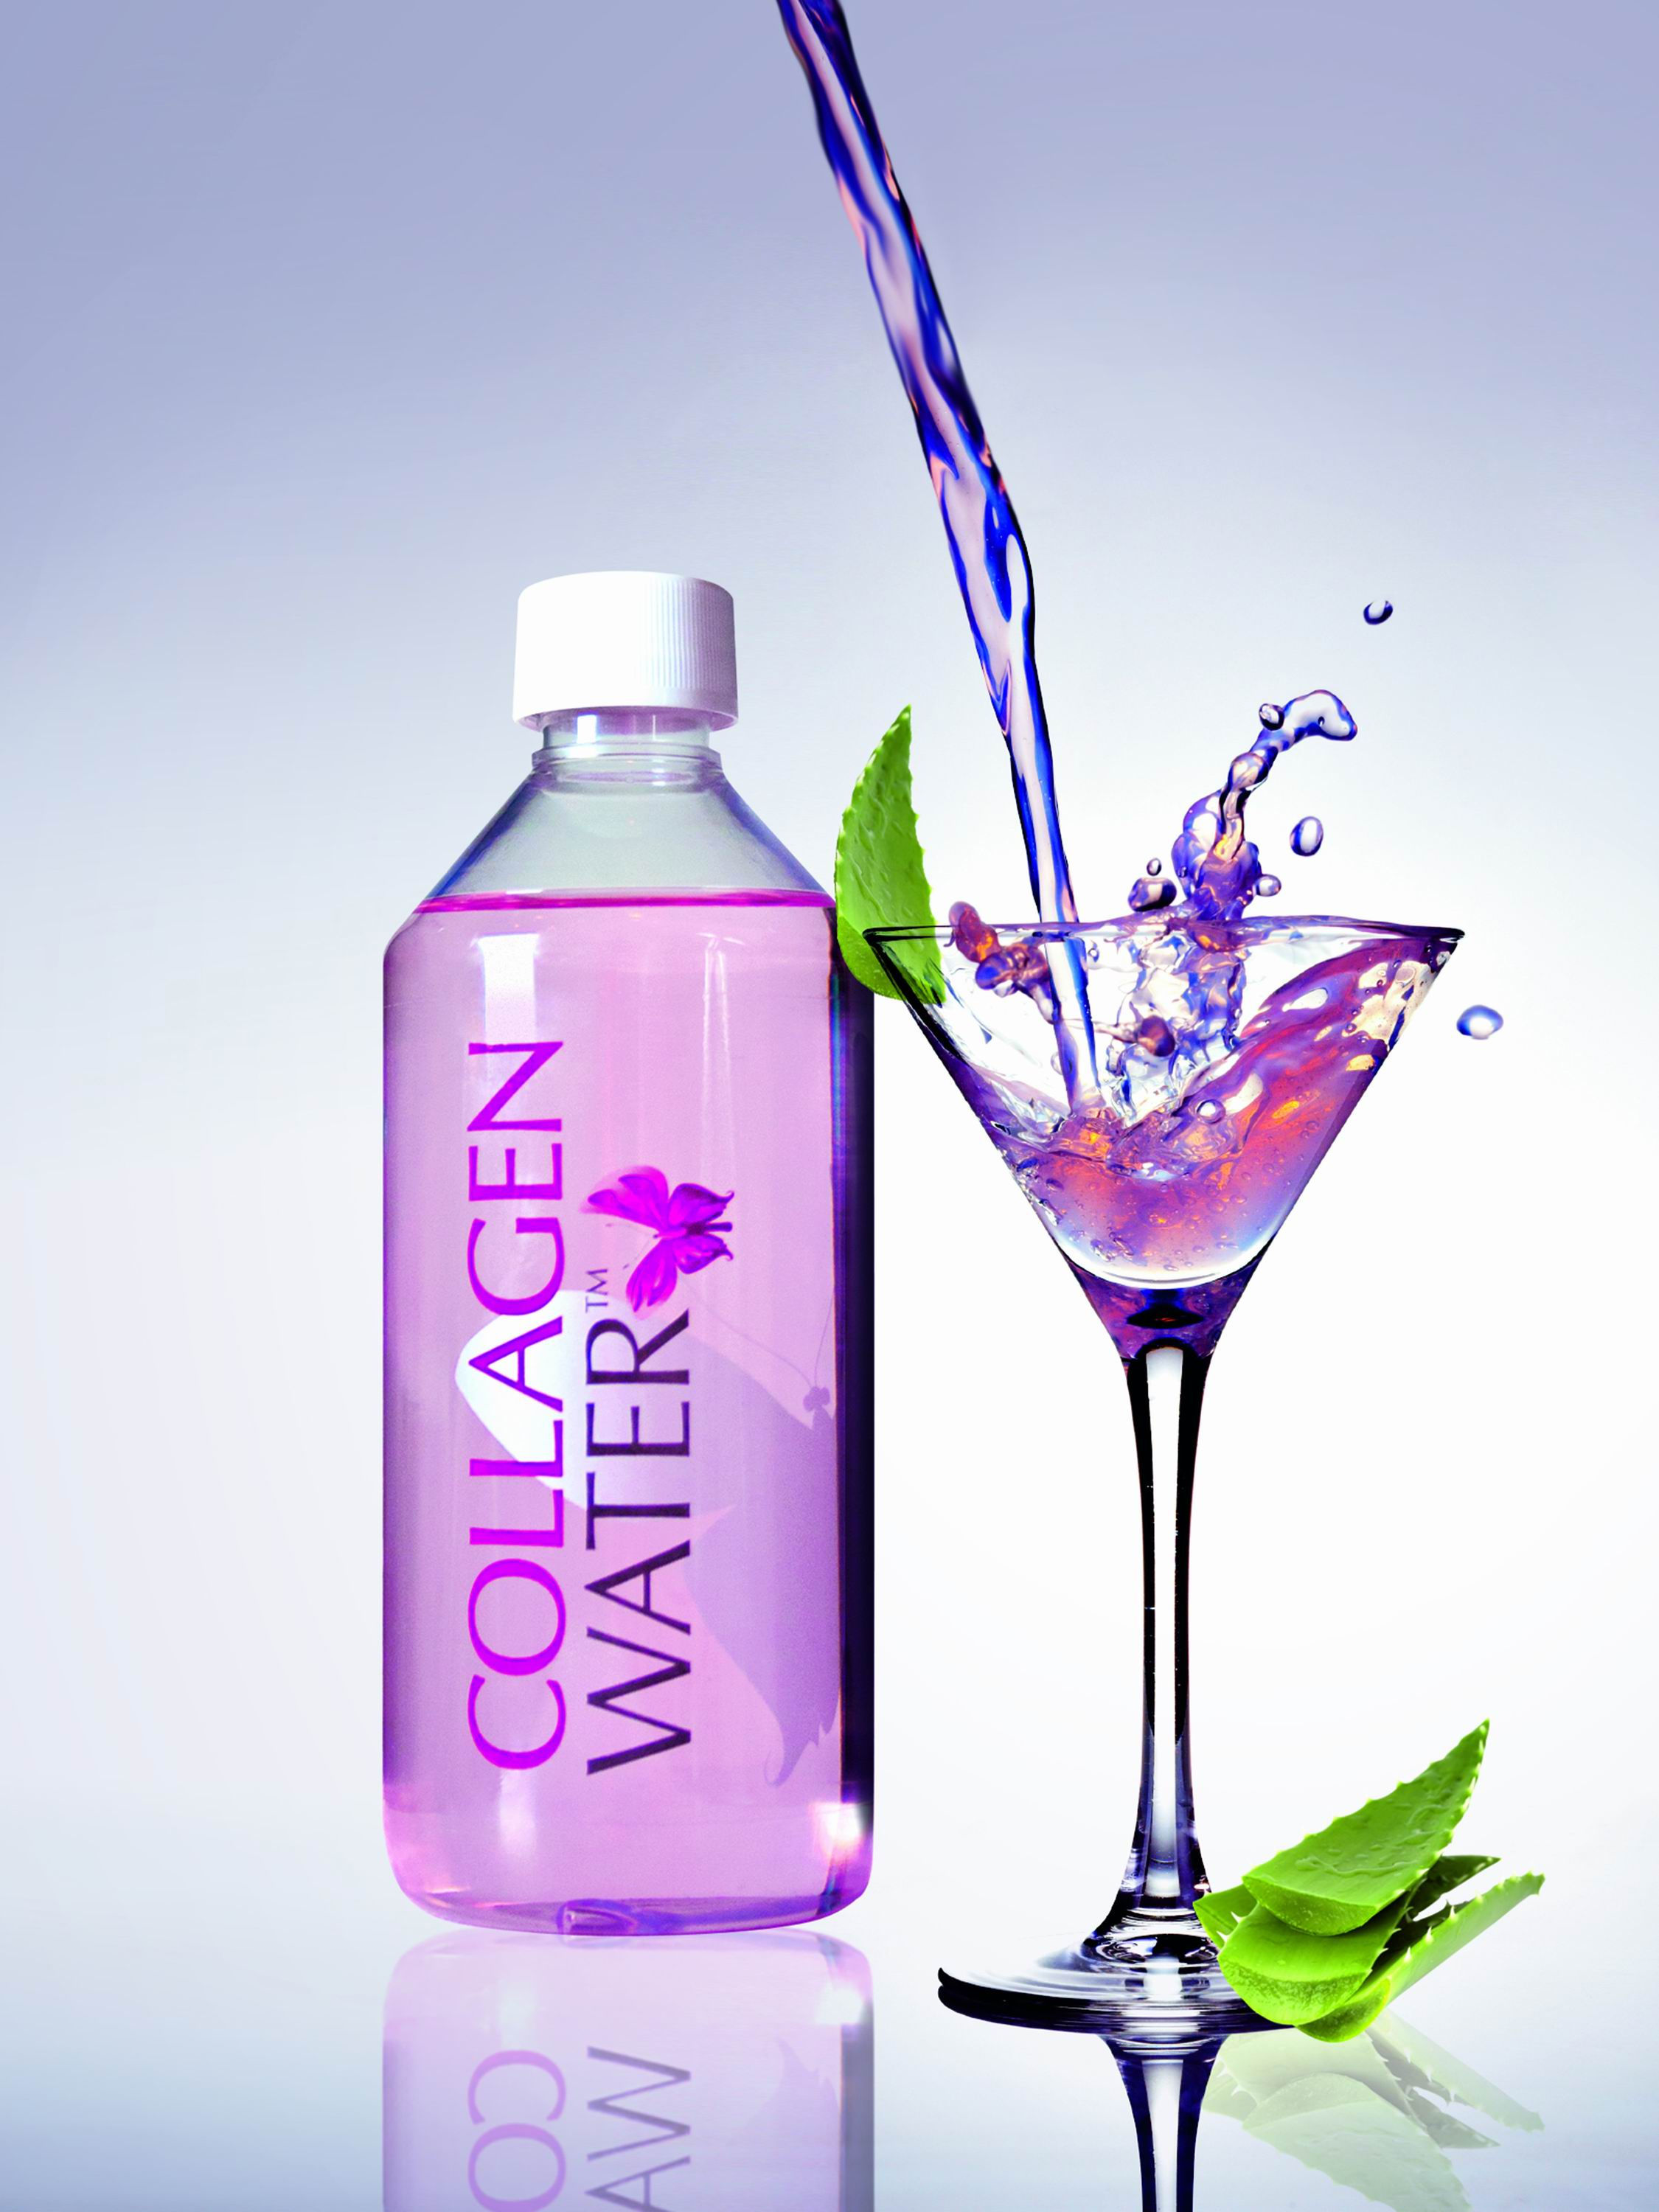 Gelita Collagen Water